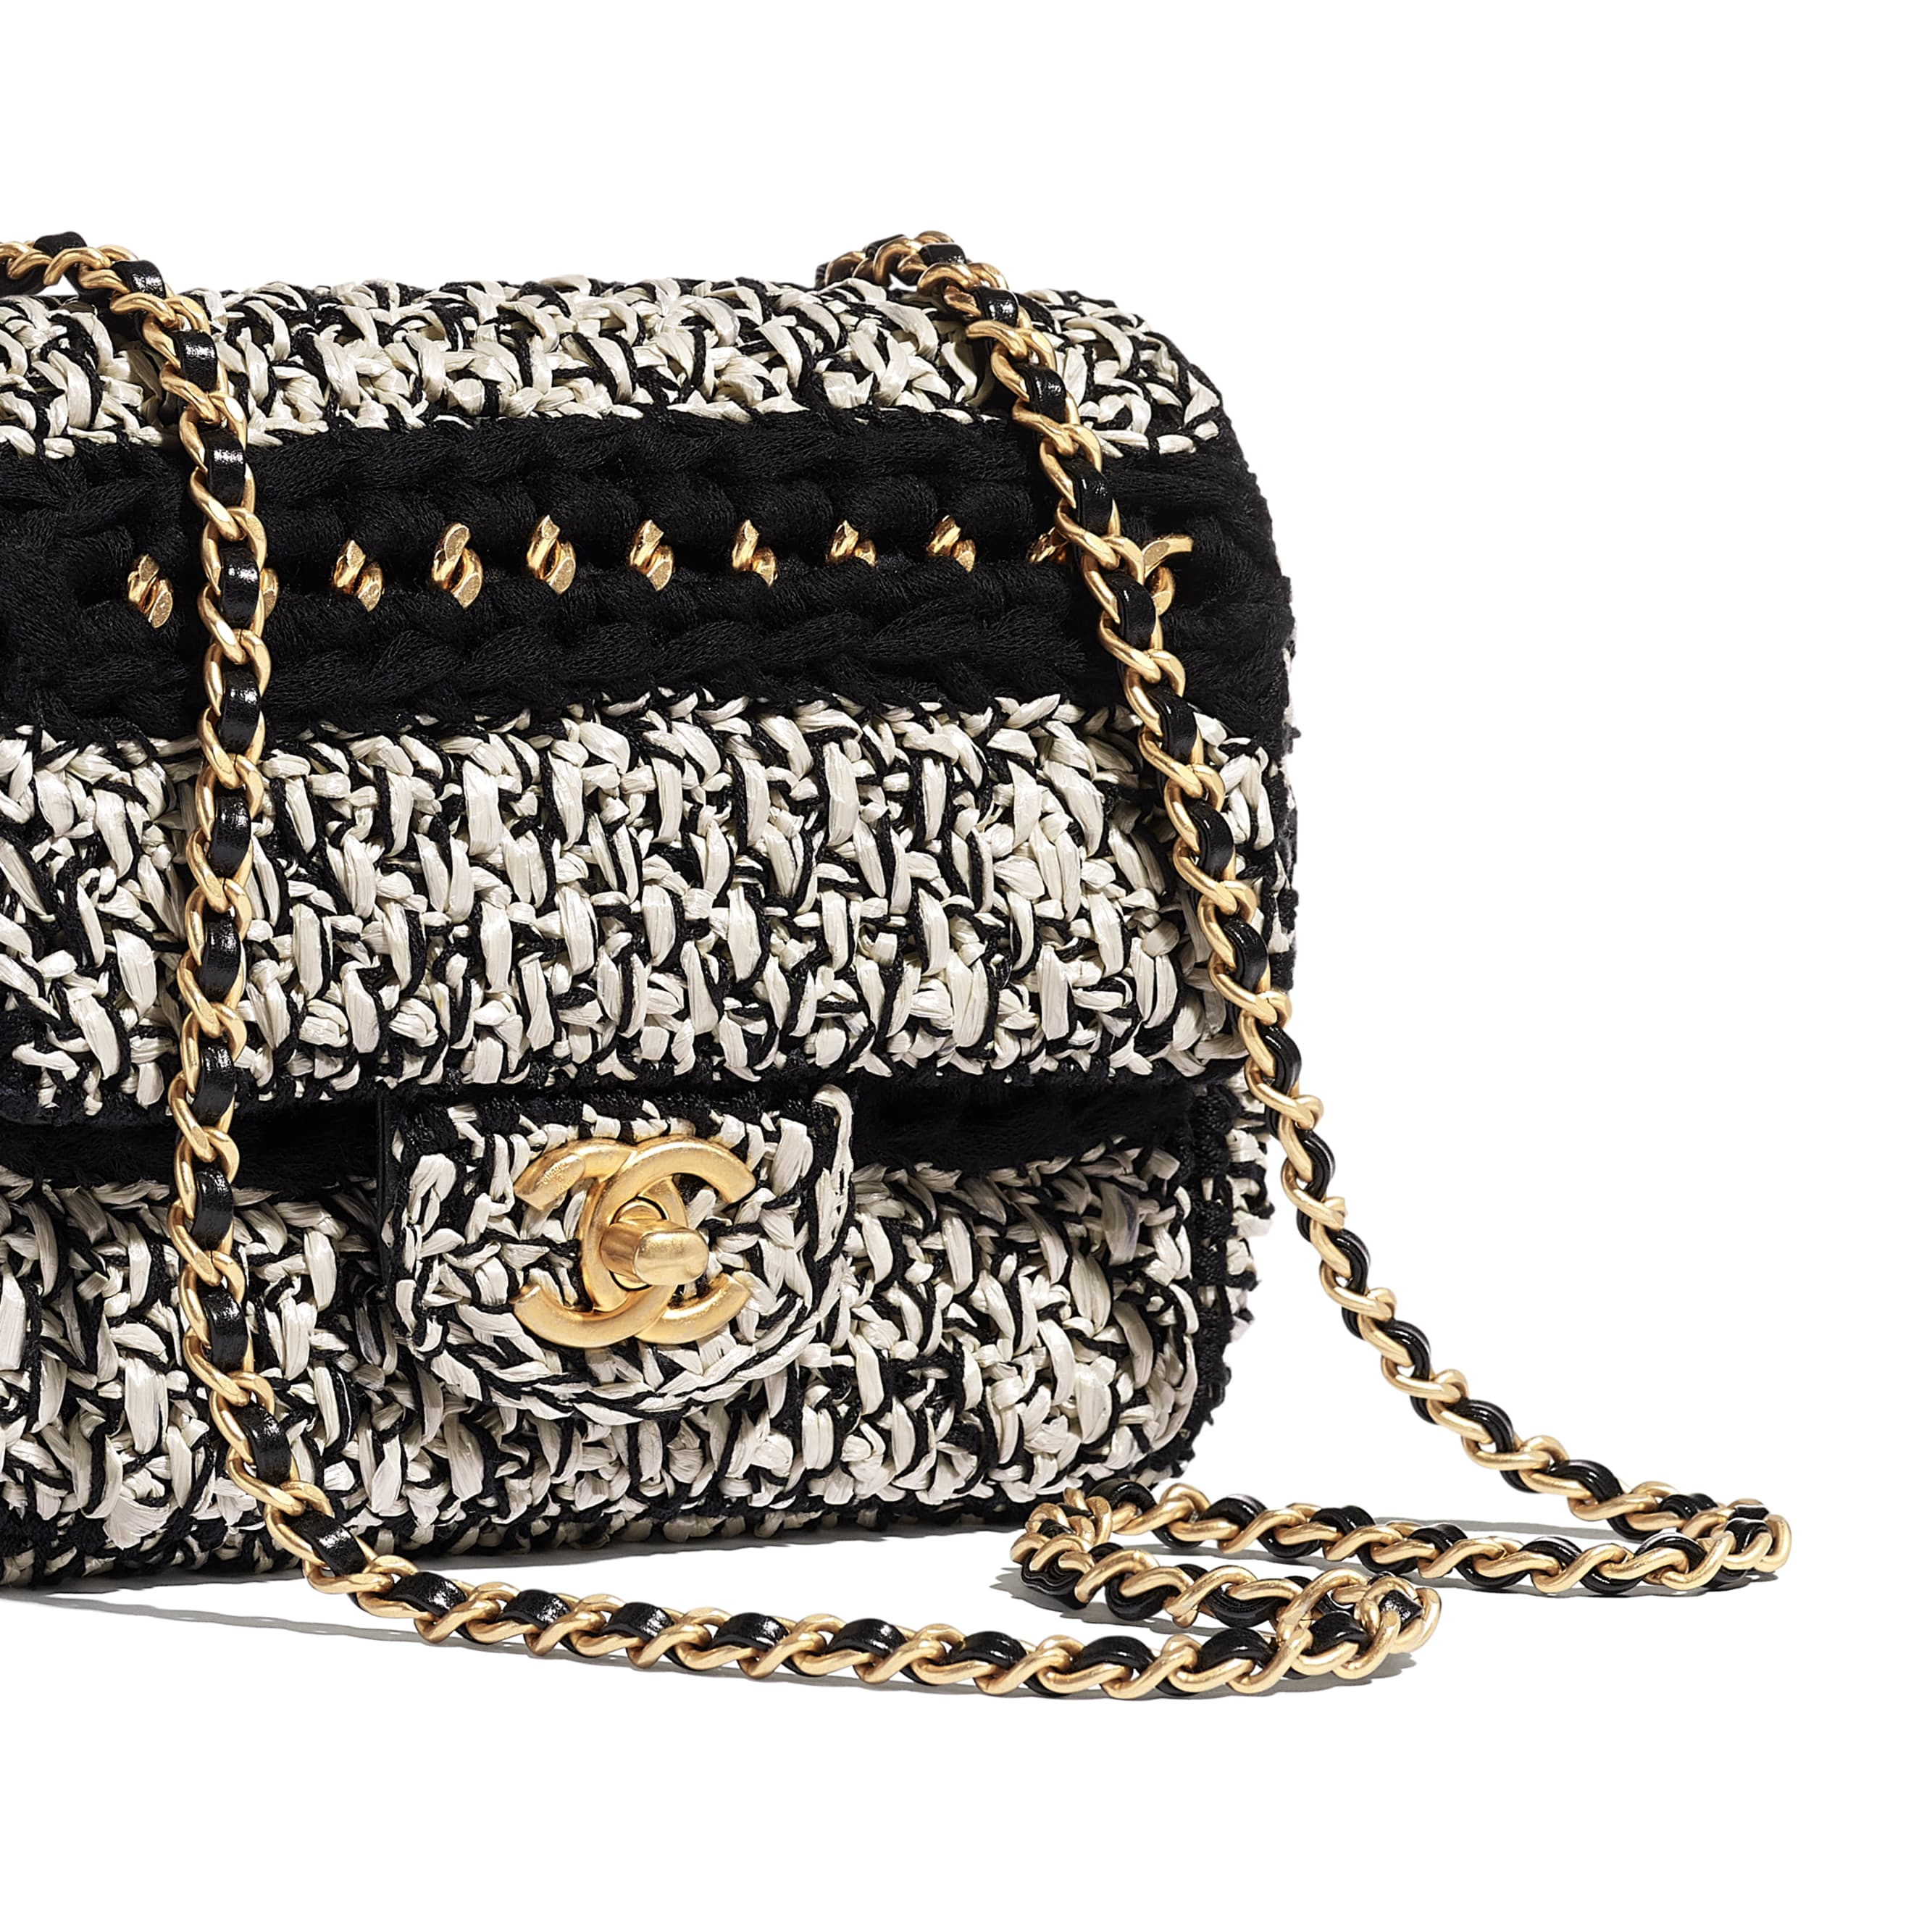 Flap Bag - Black & White - Mixed Fibers, Lambskin & Gold-Tone Metal - Extra view - see standard sized version